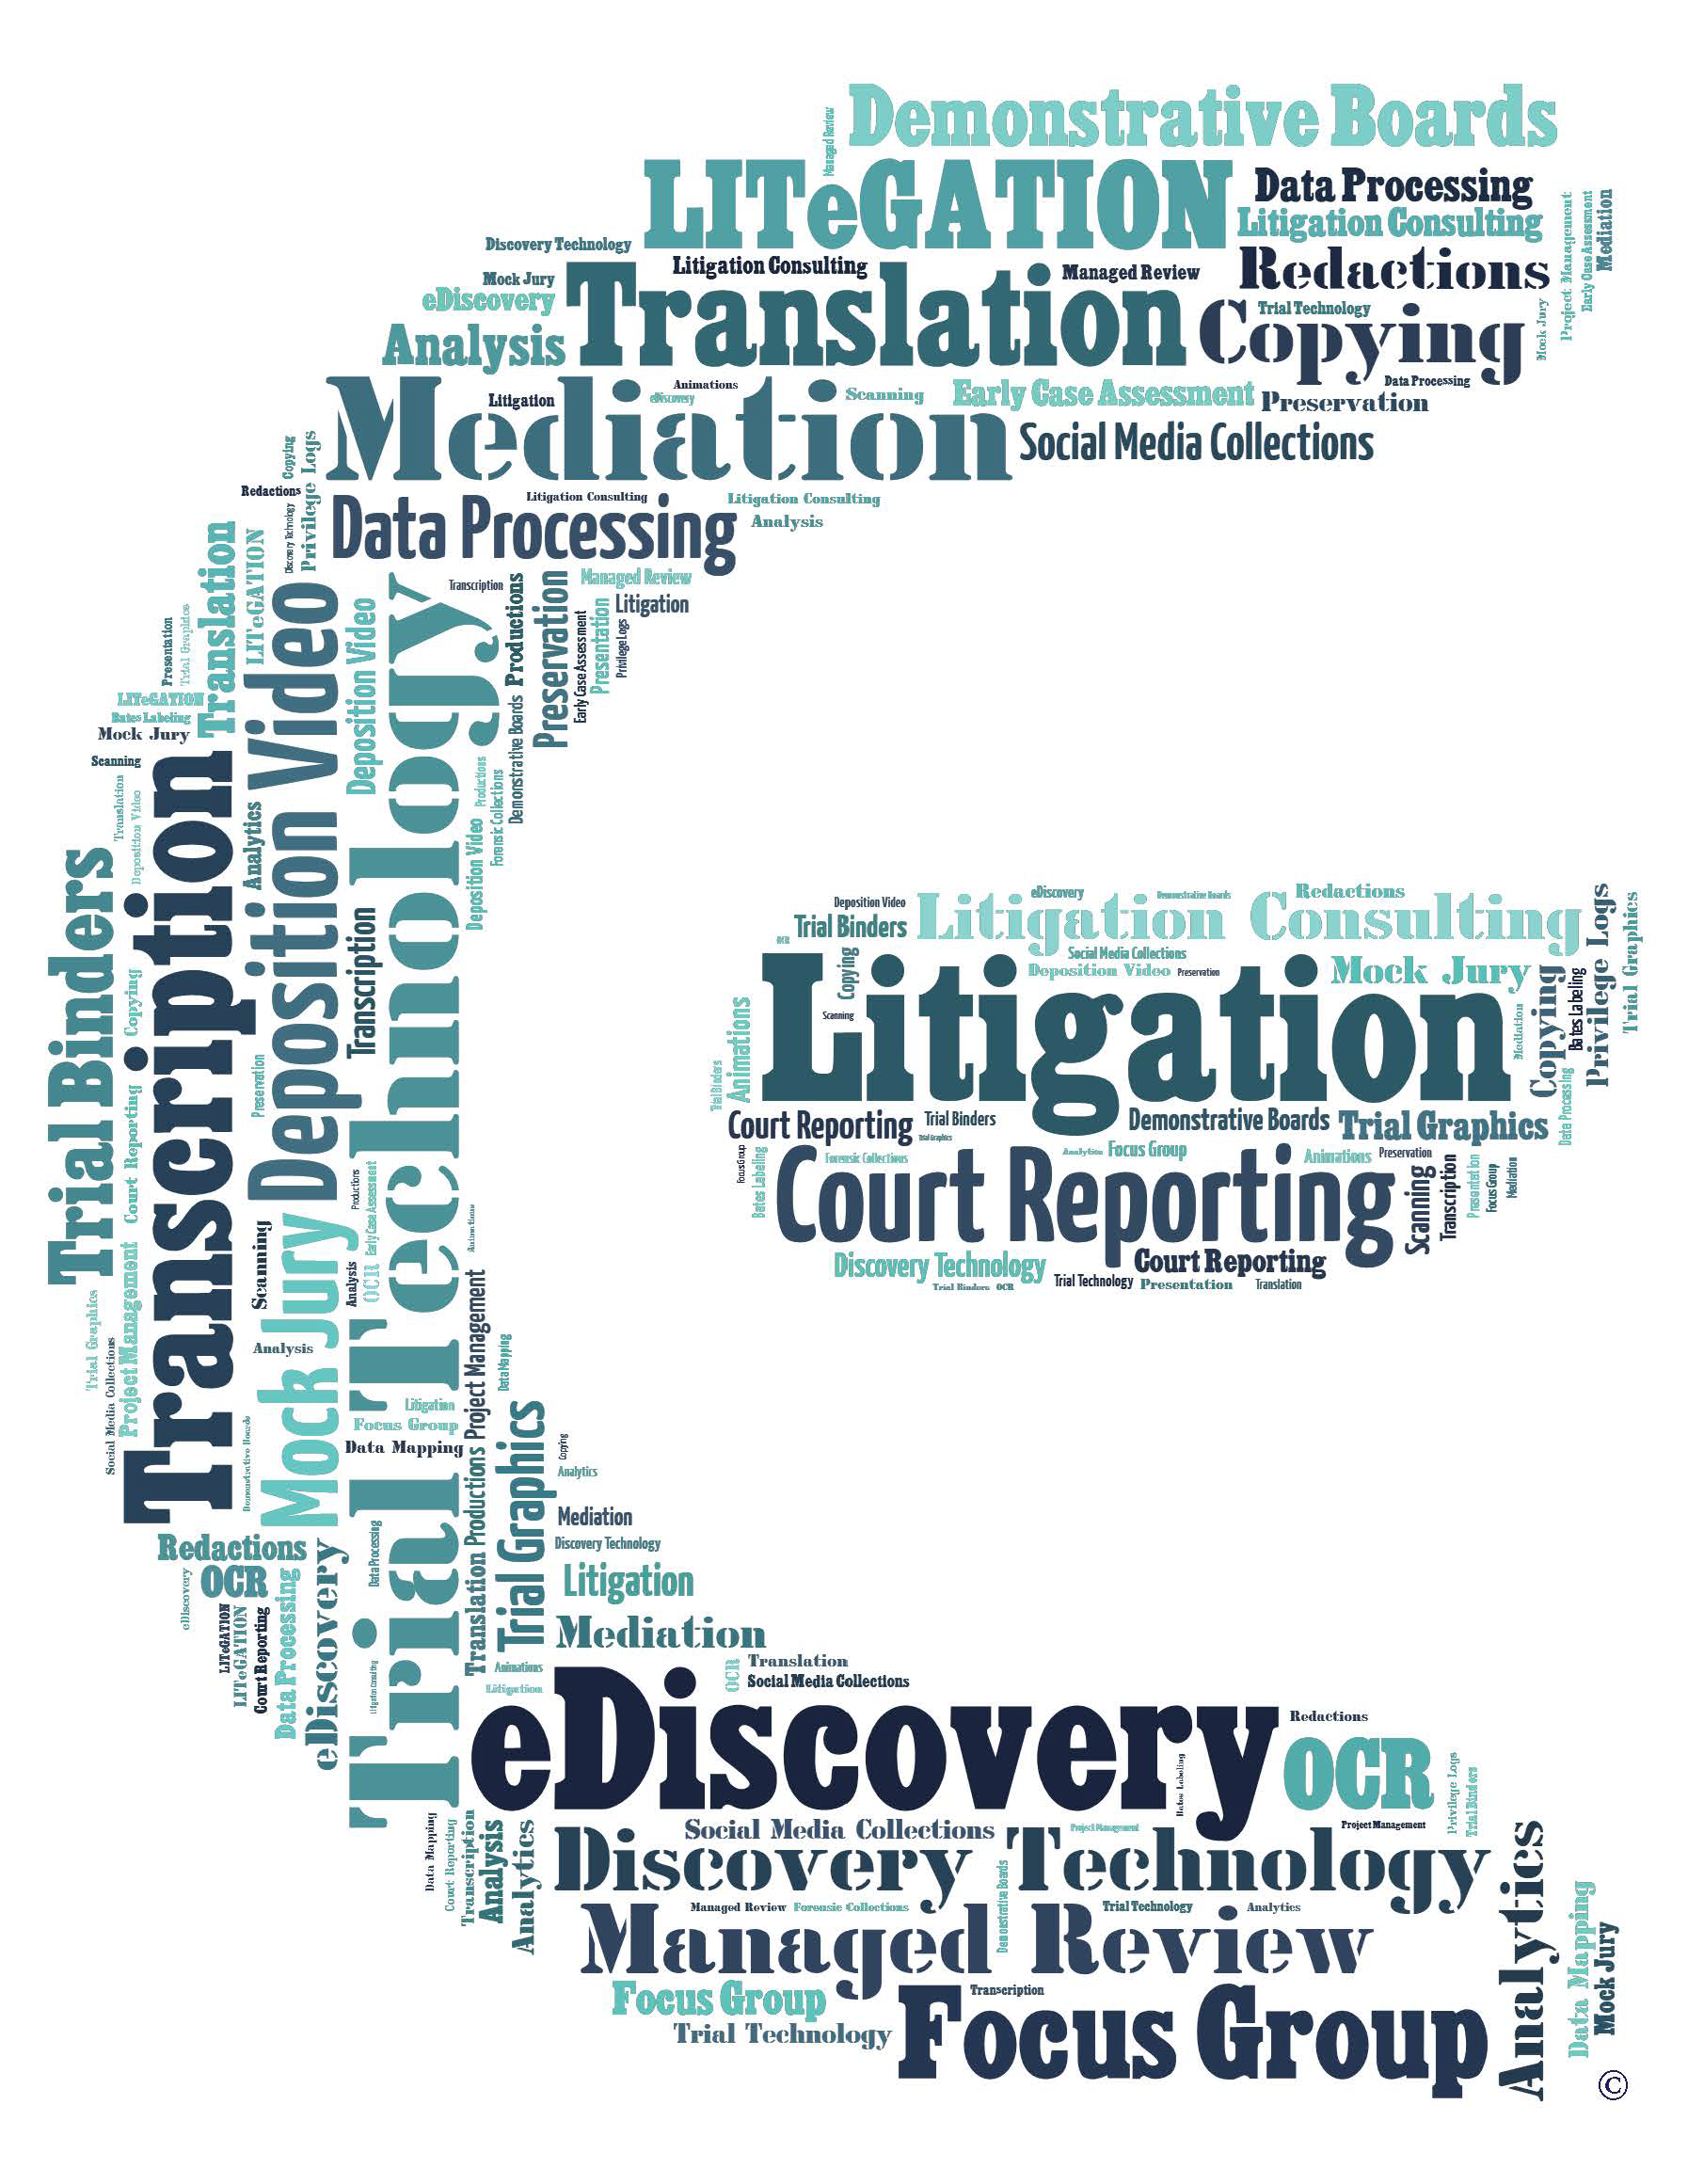 ediscovery services in nj